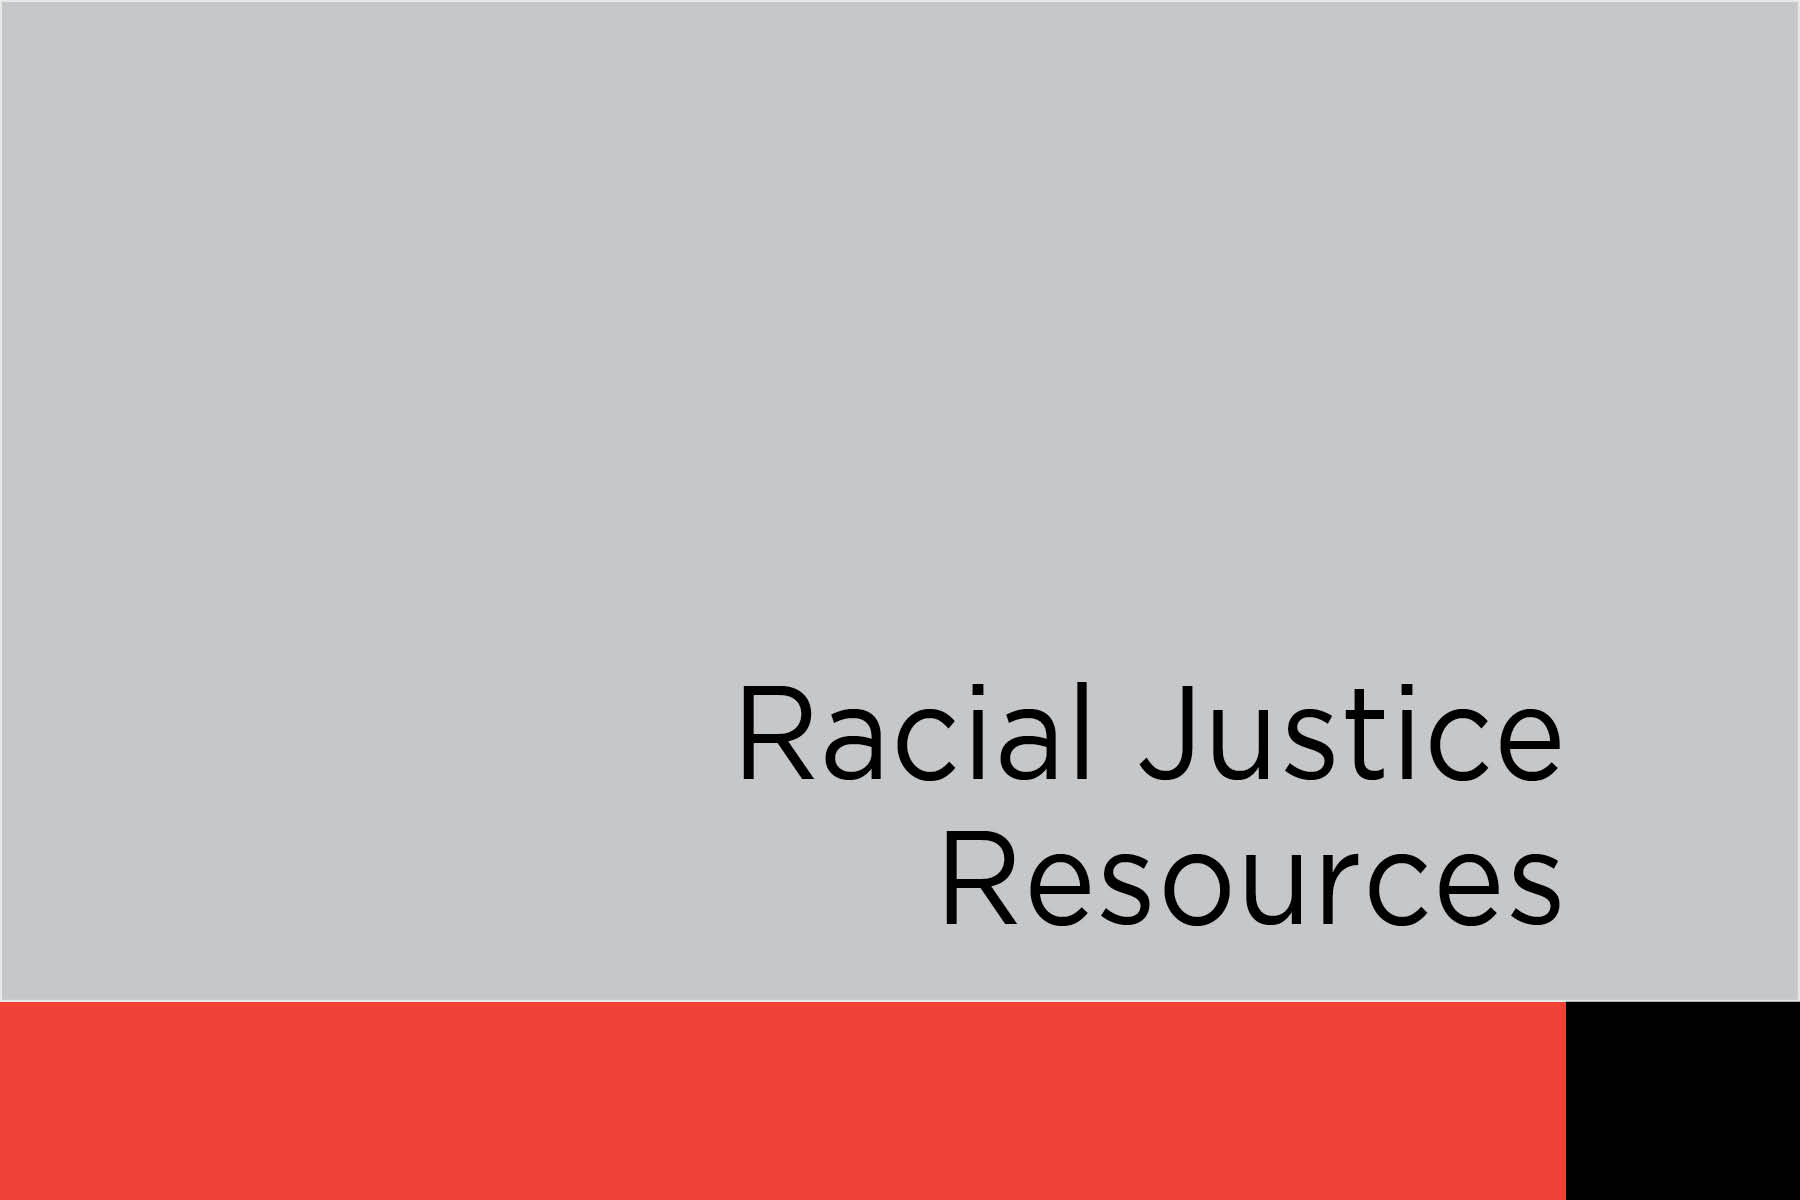 We know there is hard work to be done to achieve Racial Justice. Here are a few resources we've found helpful in this work.